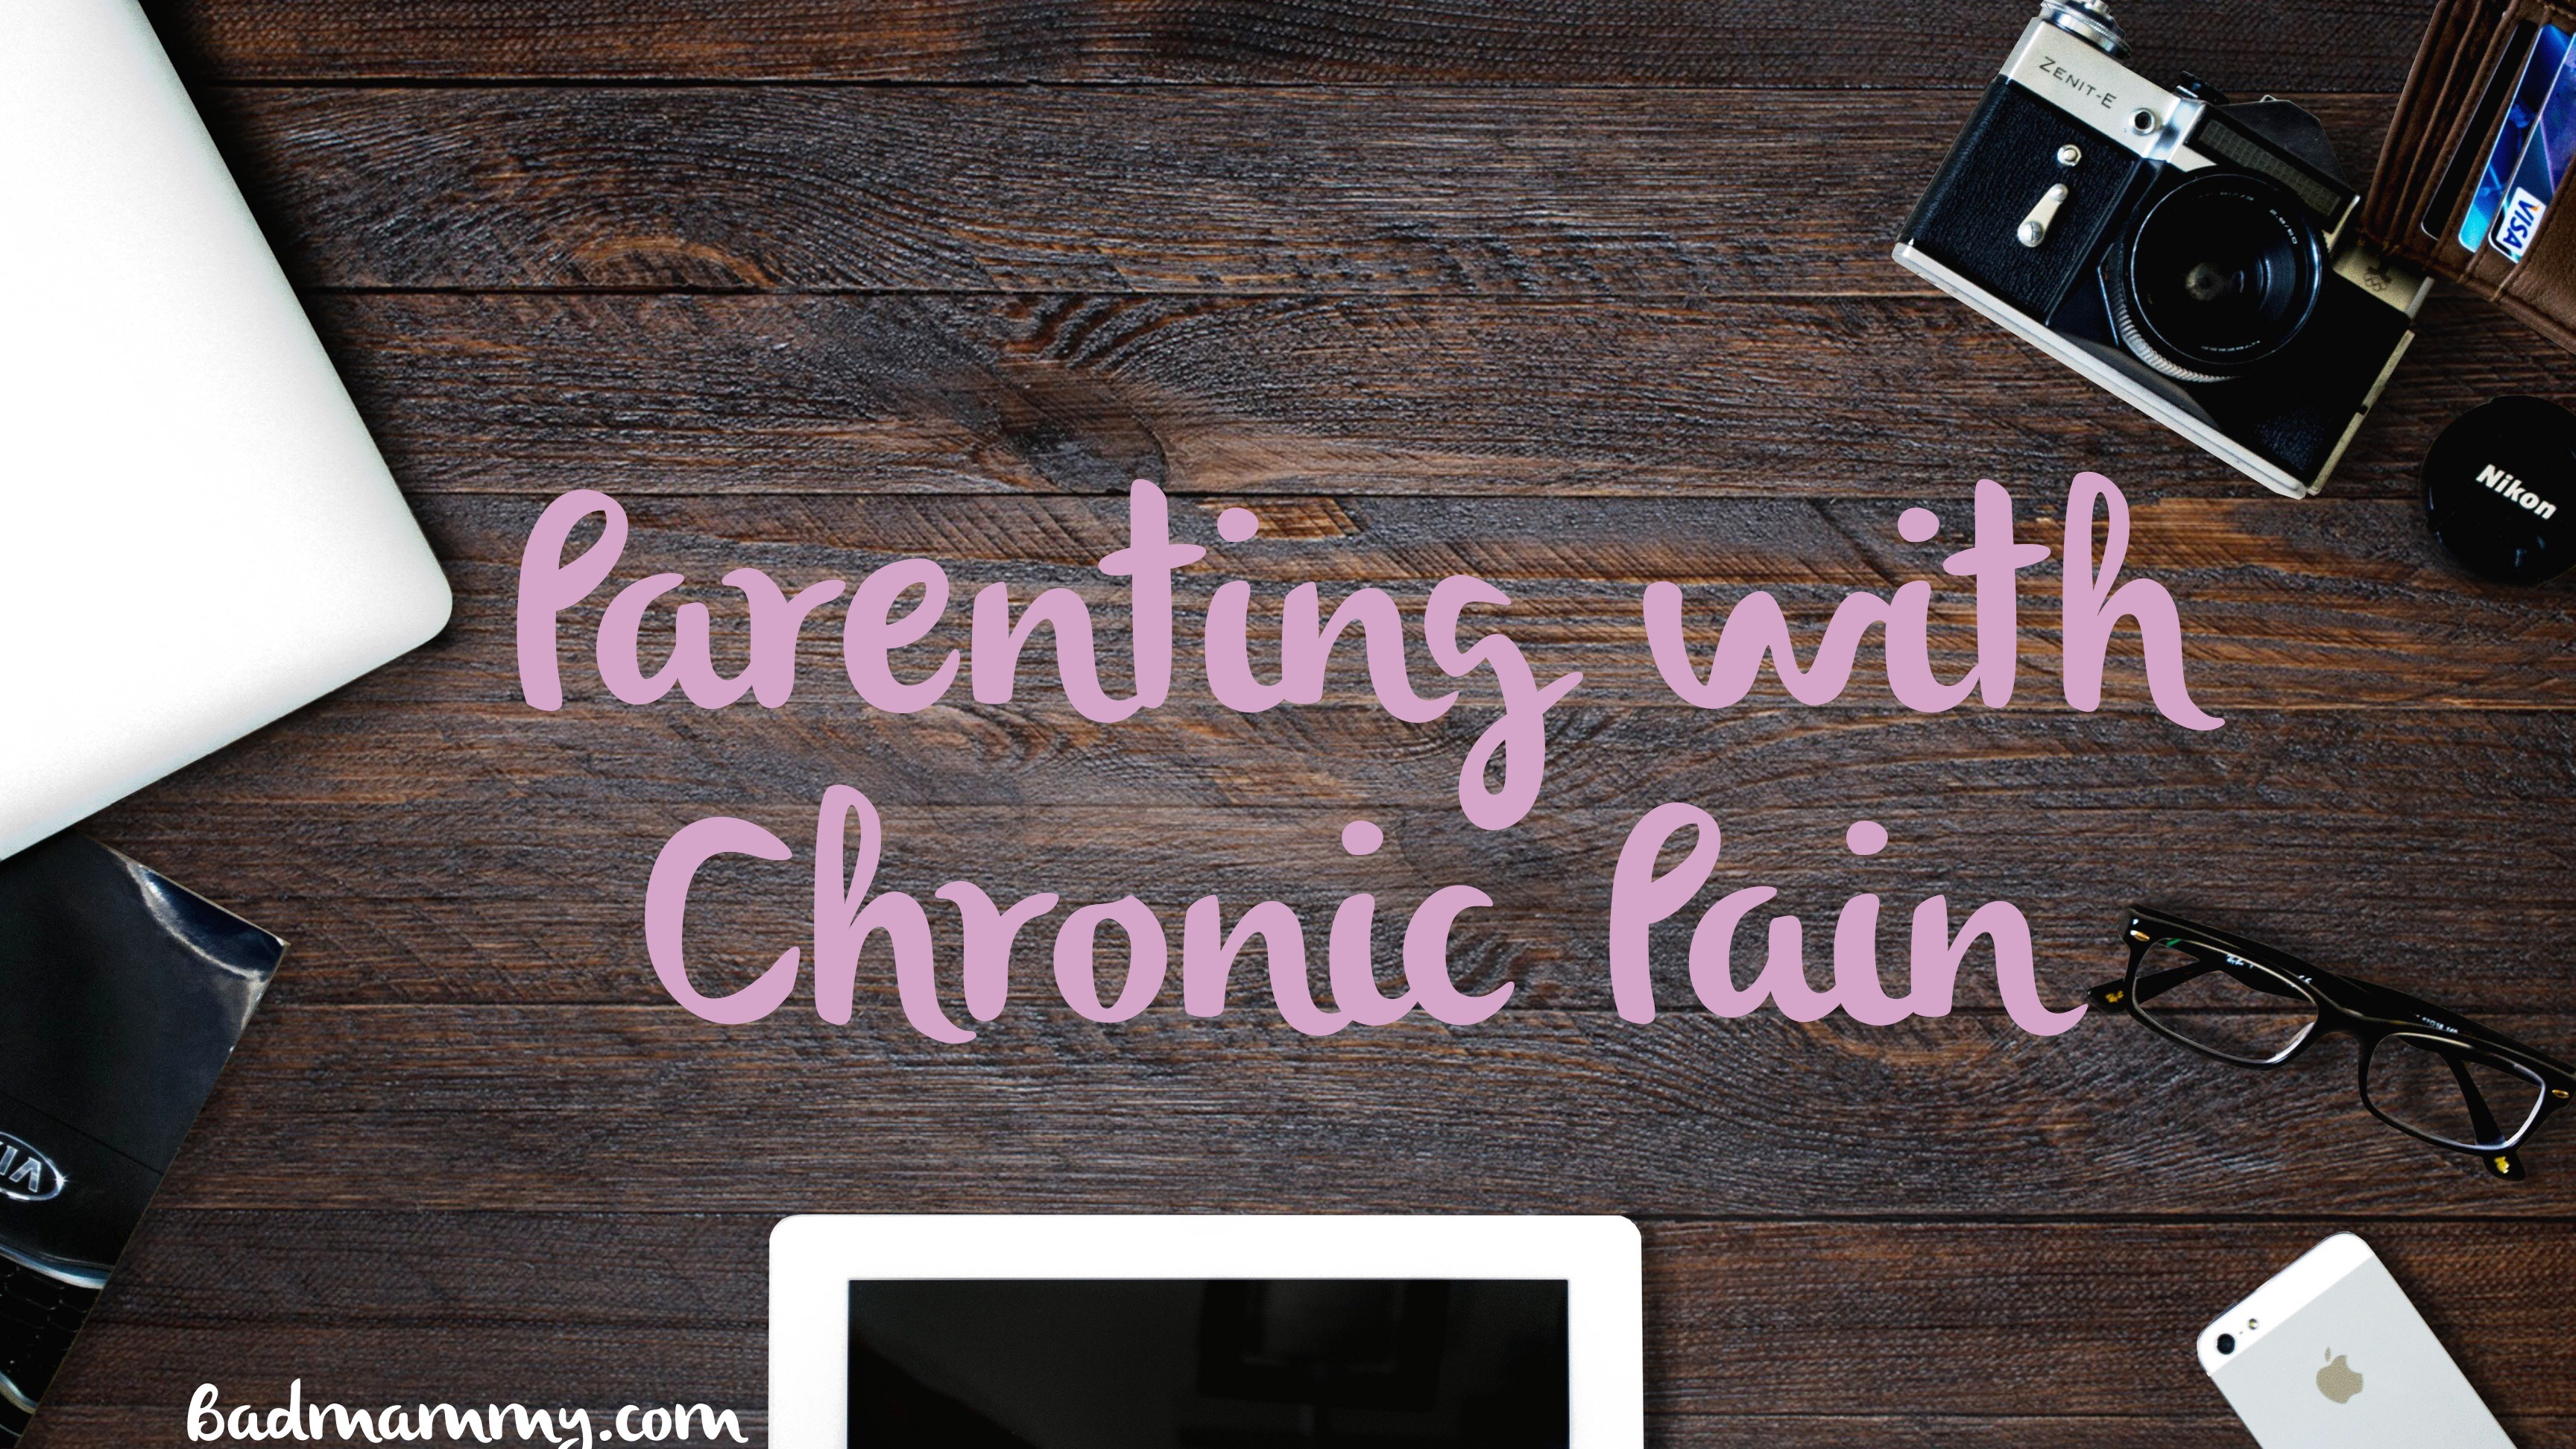 chronic pain parenting ireland - badmammy.com